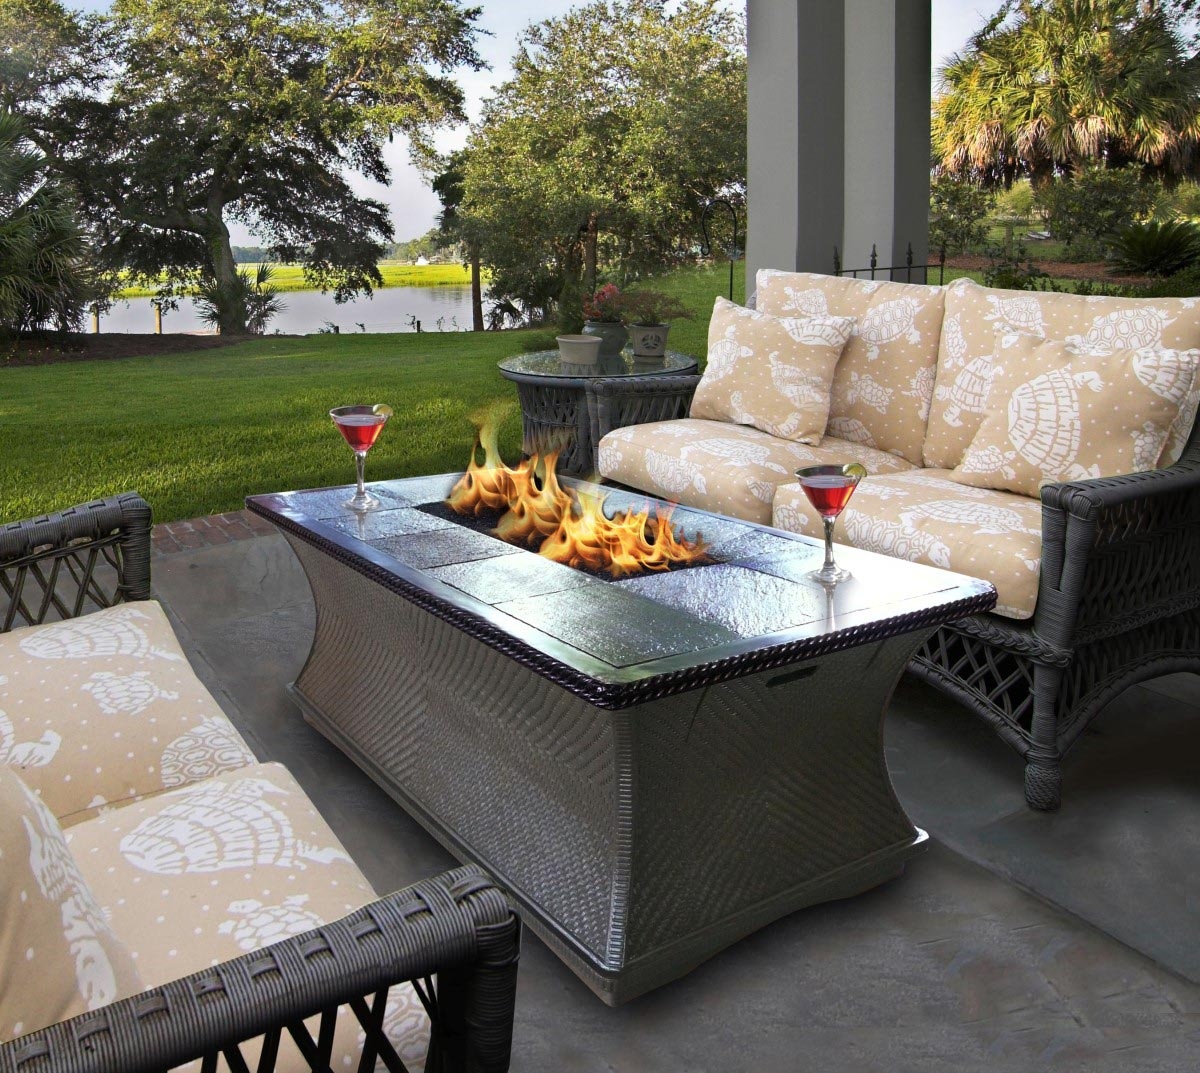 How to Make a DIY Fire Pit Table Top? : Fire Pit Design Ideas